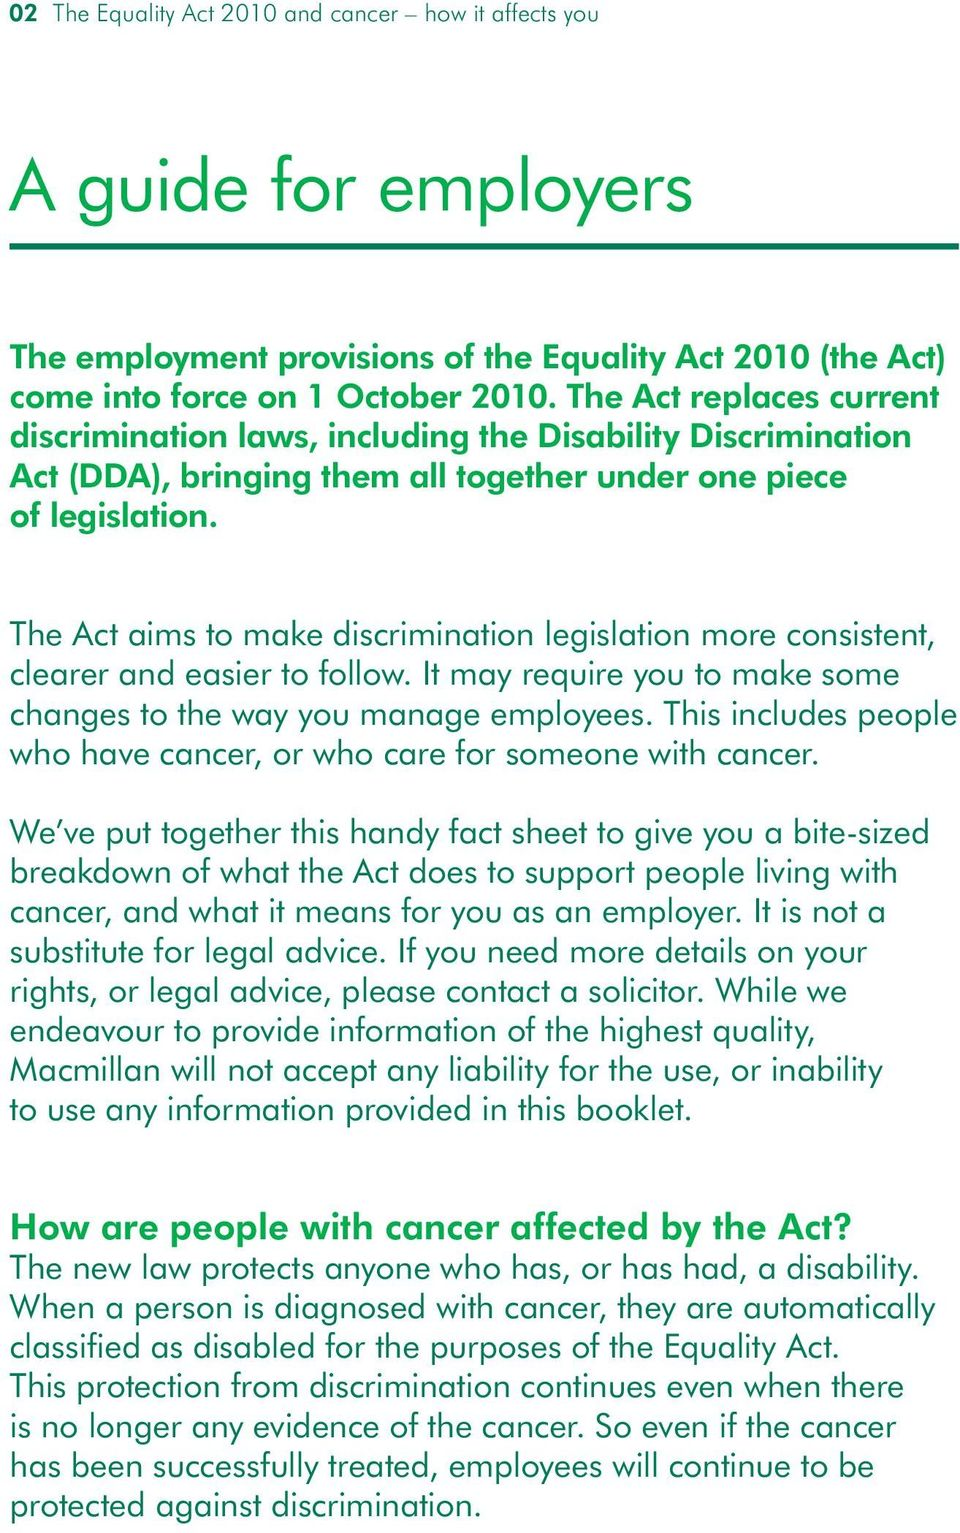 The Act aims to make discrimination legislation more consistent, clearer and easier to follow. It may require you to make some changes to the way you manage employees.